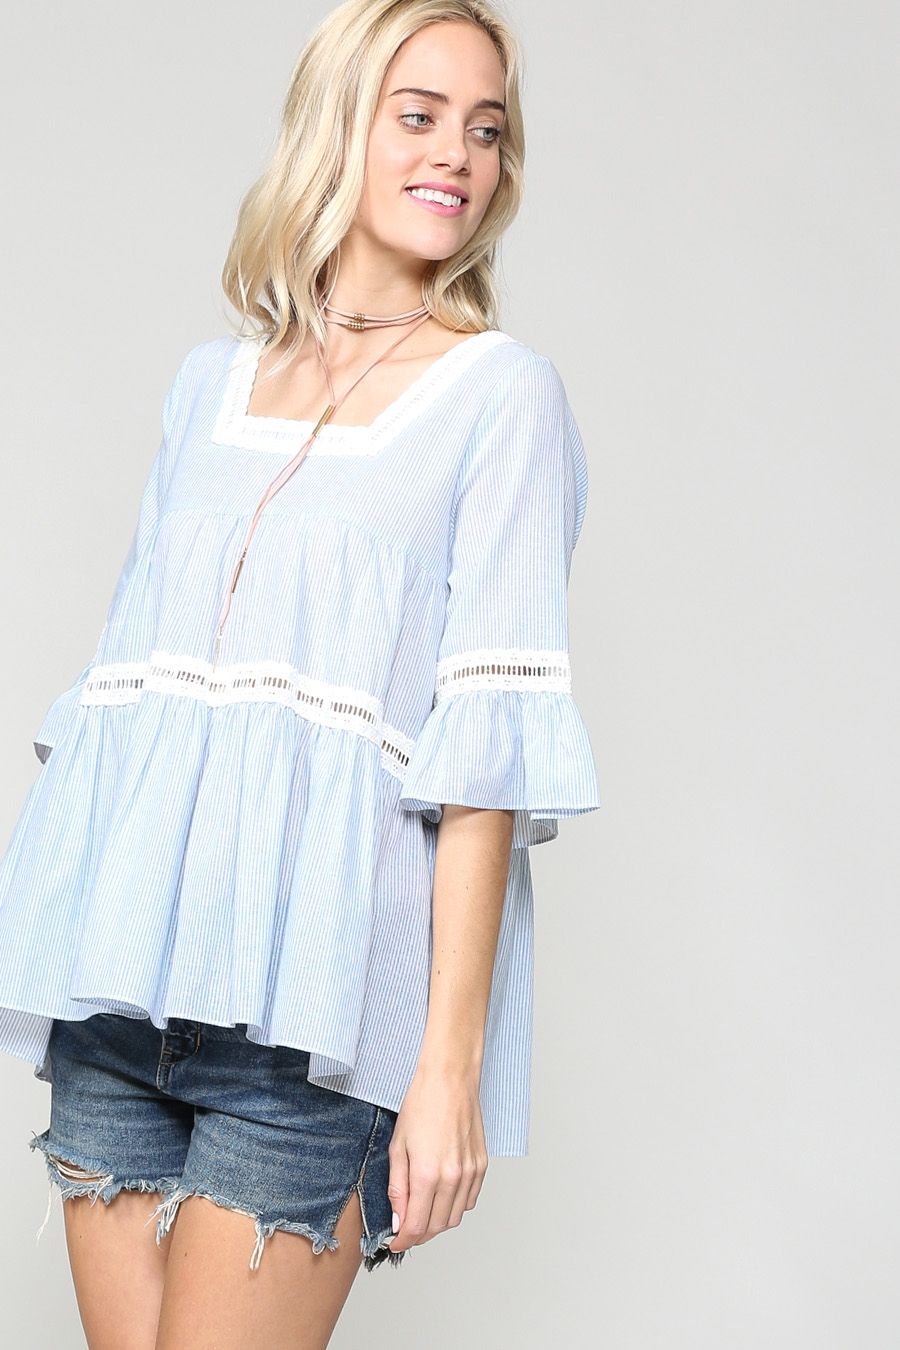 STRIPED LOOSE FIT RUFFLE TUNIC TOP - orangeshine.com